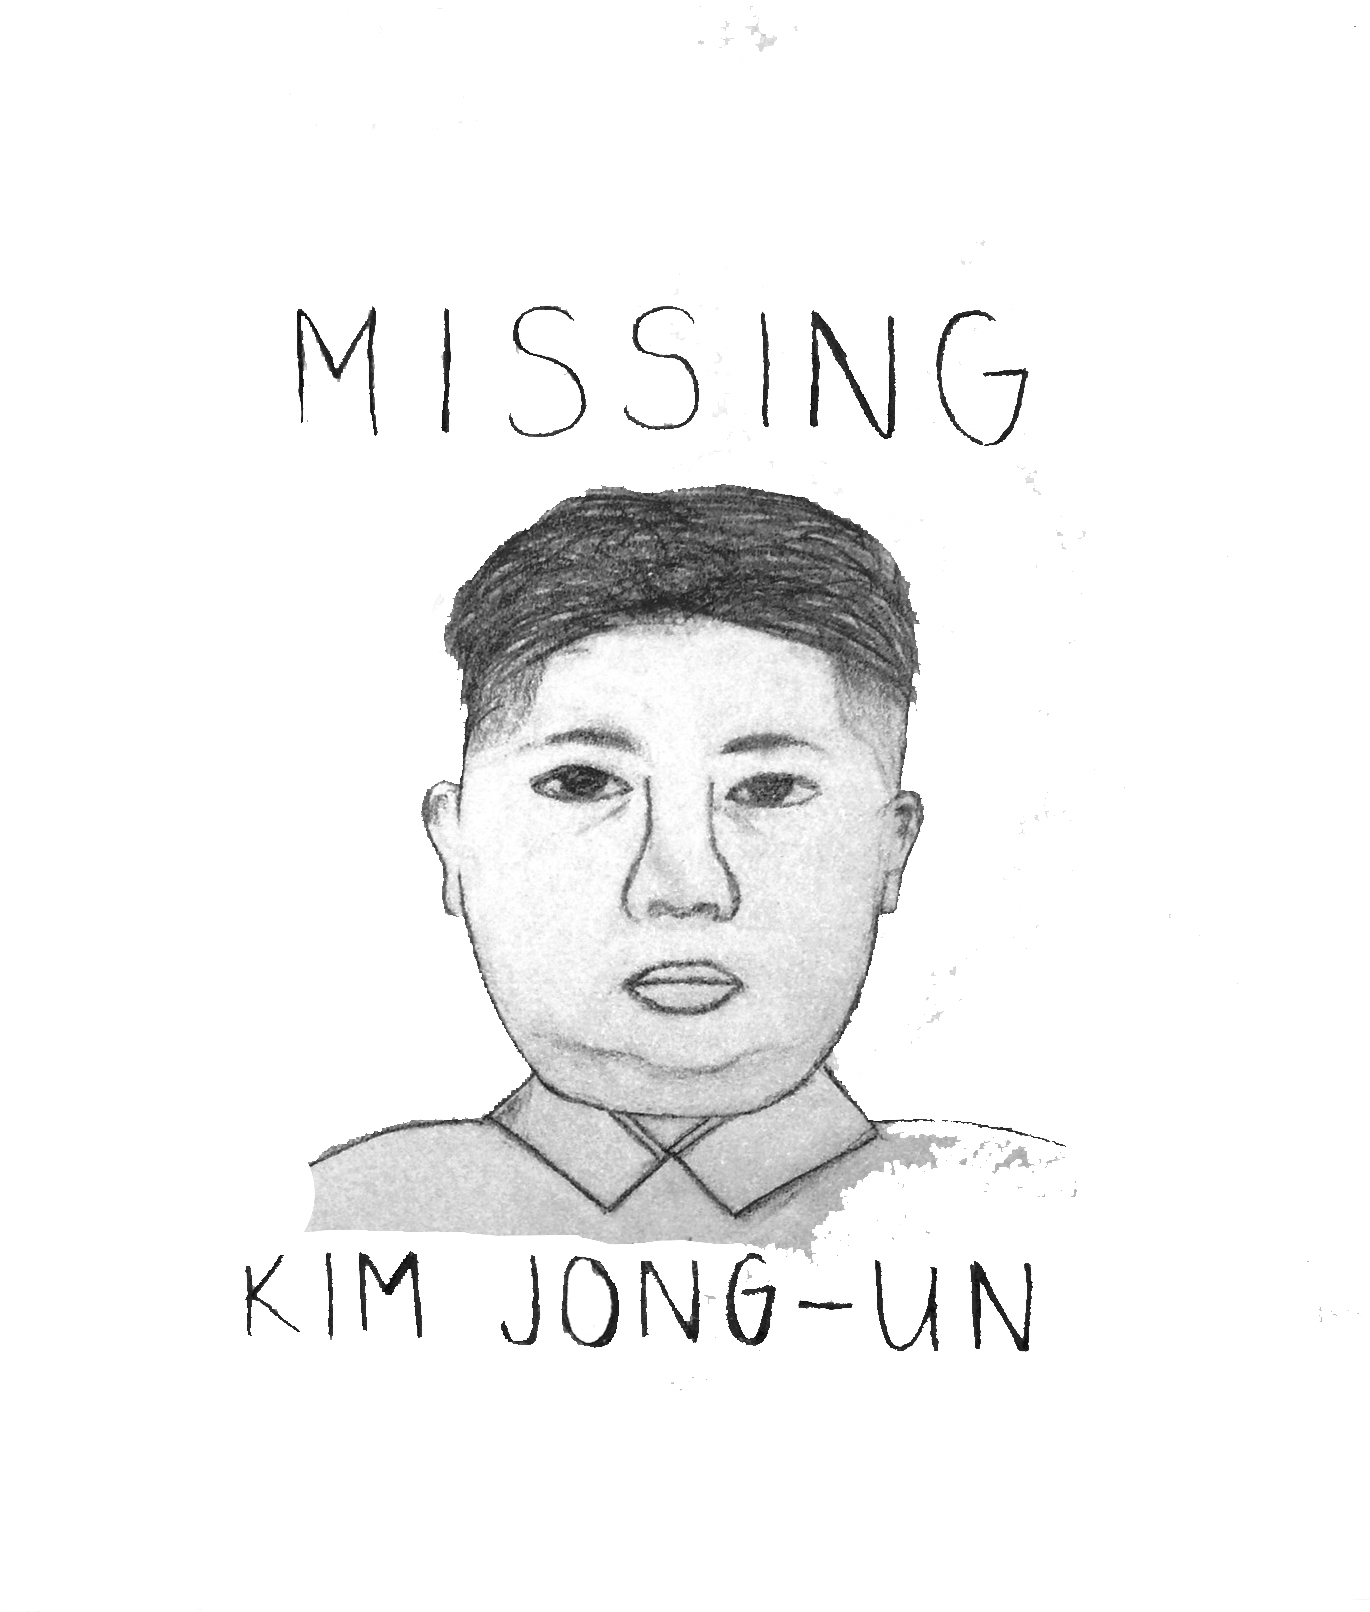 Speculation about Jong-un is useless (credit: Alison Chiu/Advertising Staff Member)